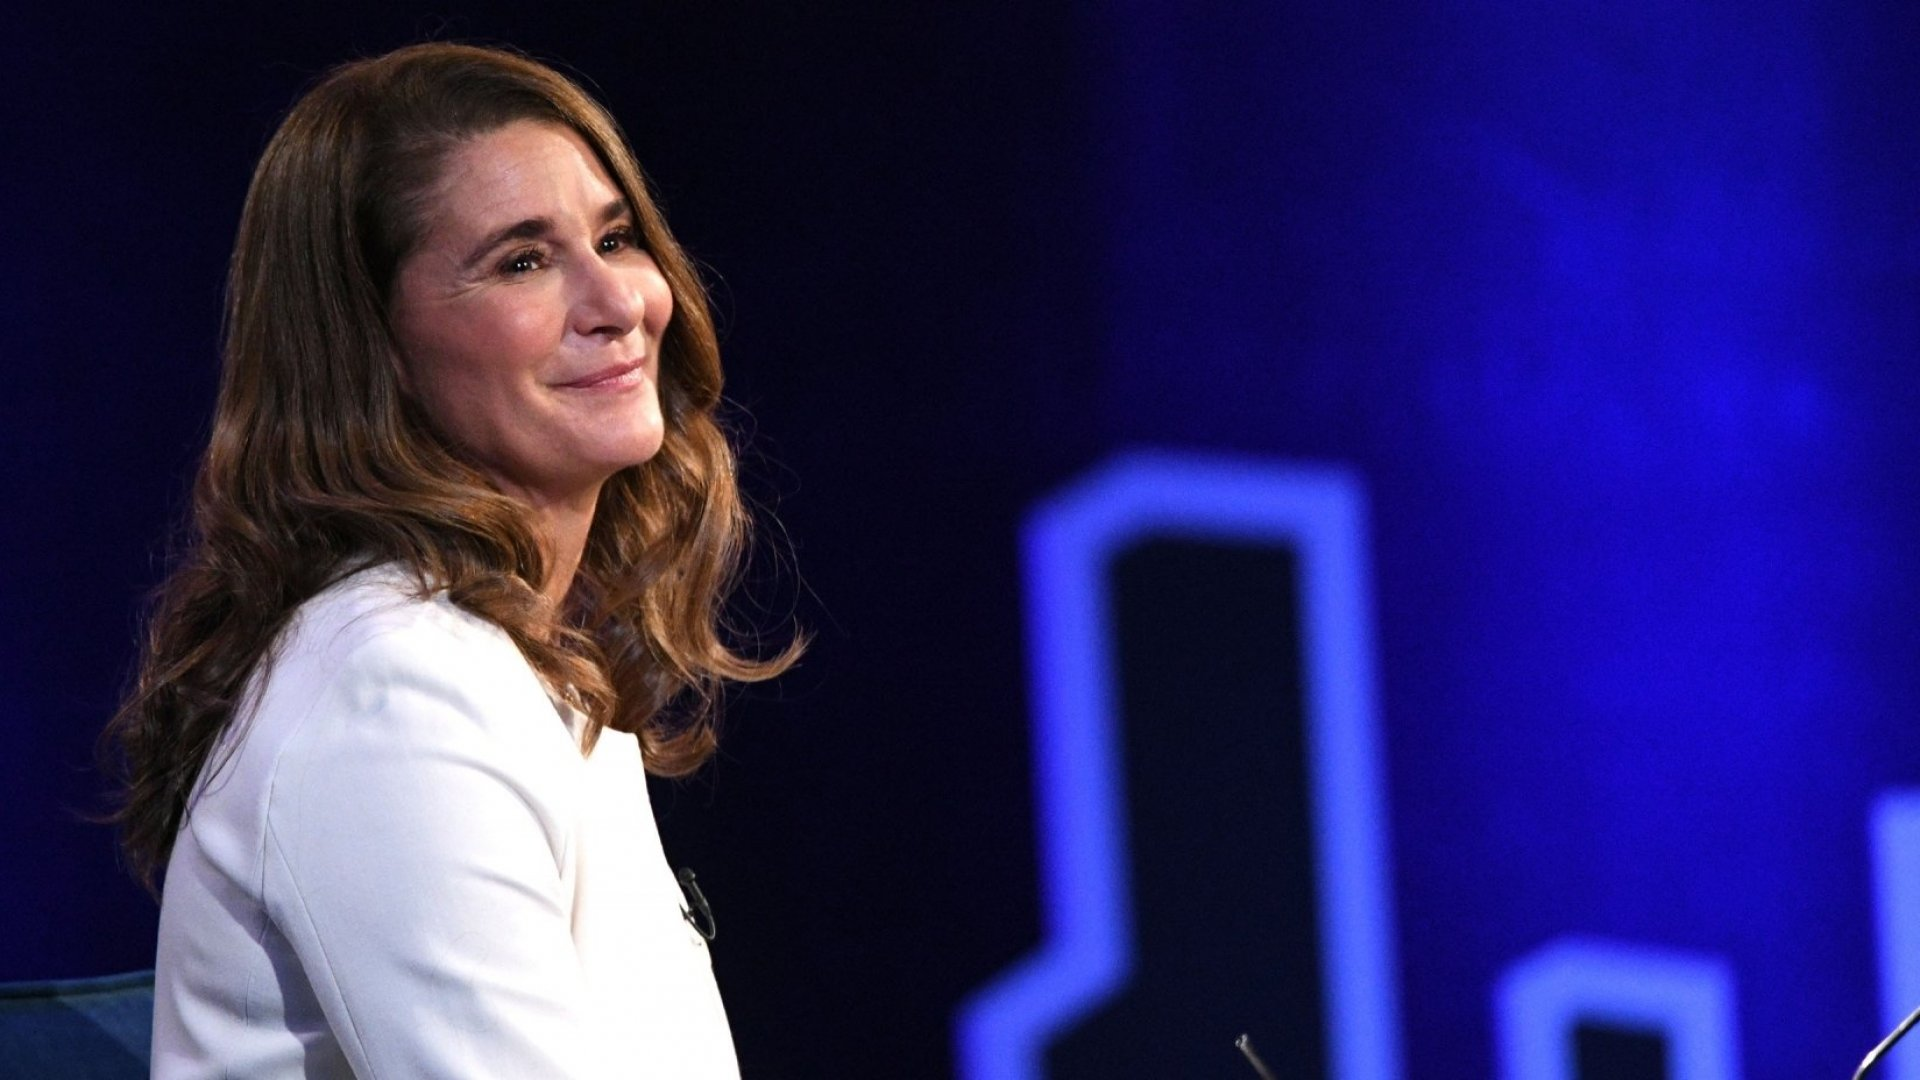 Melinda Gates Uses This 1 Strategy to Solve Some of the World's Most Complex Problems